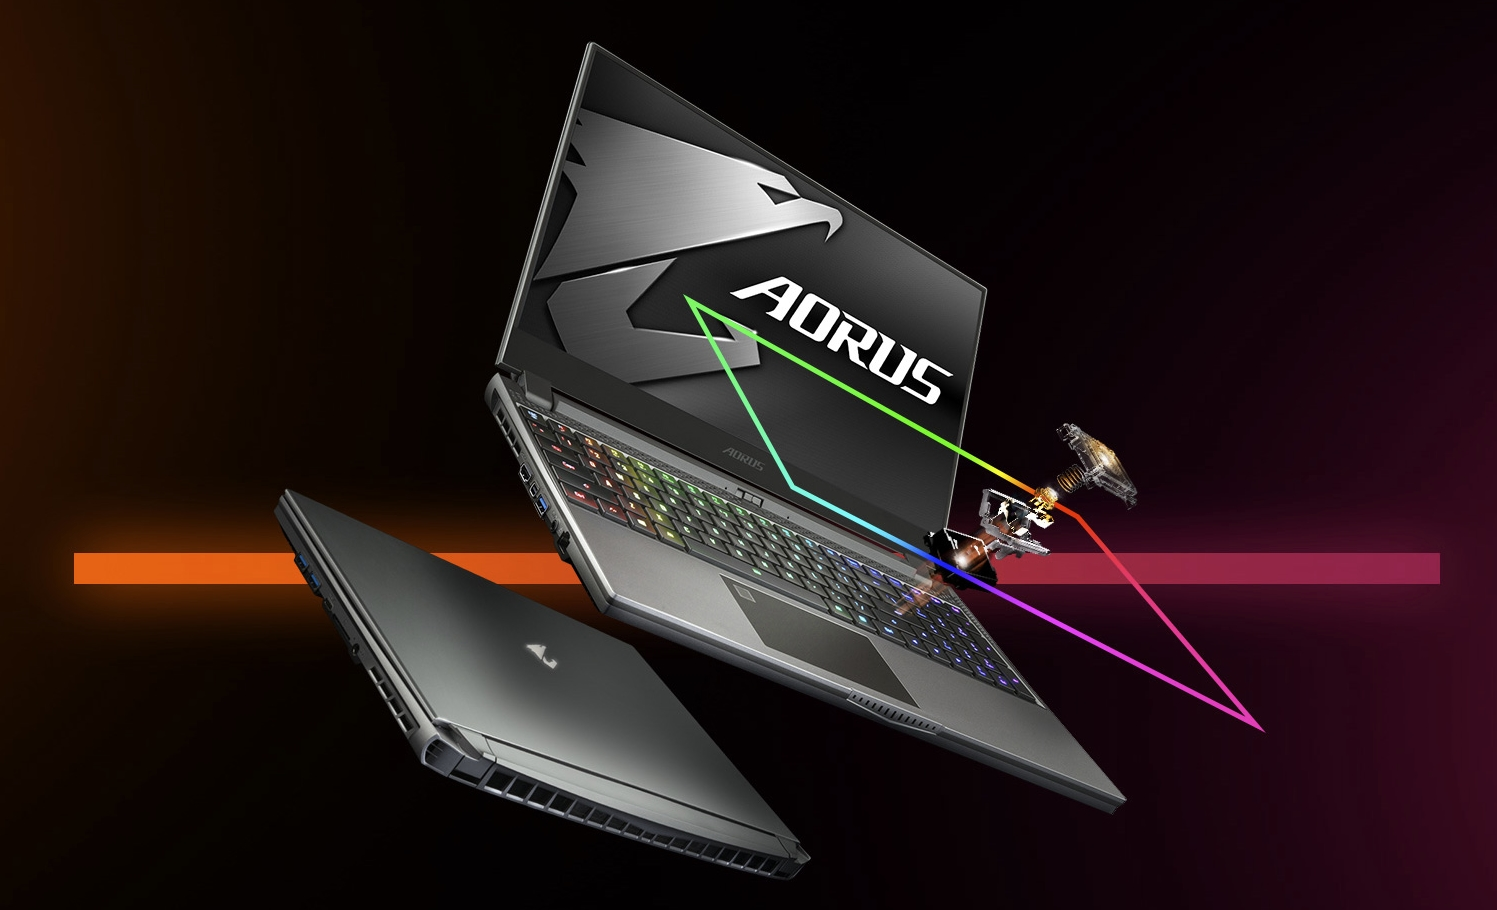 The AORUS is GIGABYTE's latest gaming laptop that doesn't take any compromise